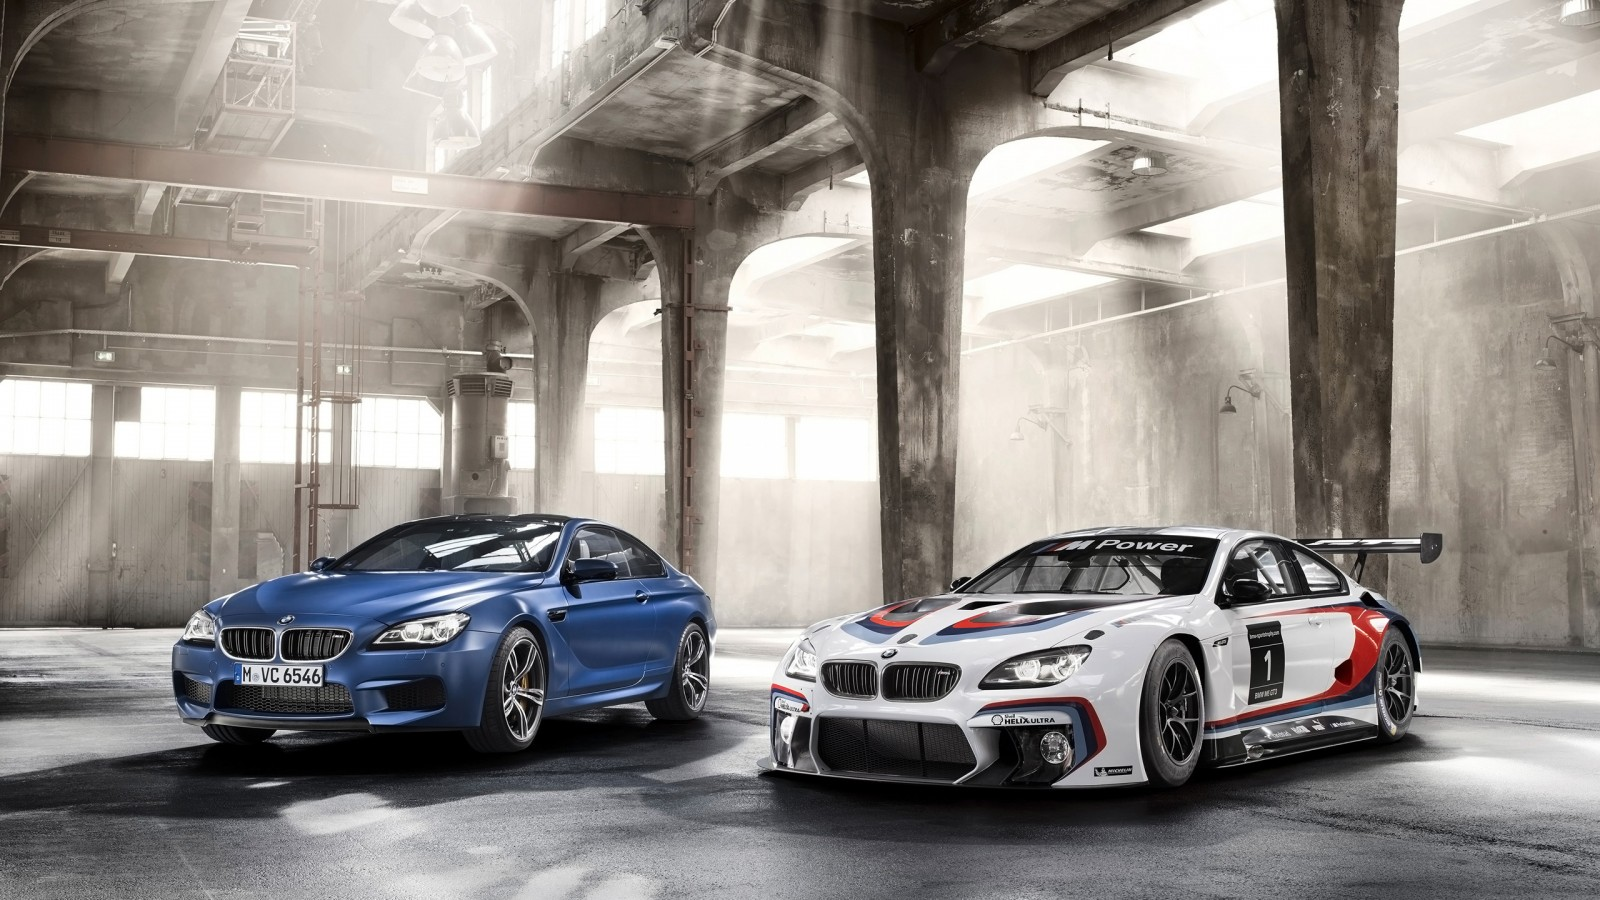 2016 BMW M6 GT3 Duos Wallpaper | HD Car Wallpapers | ID #5894